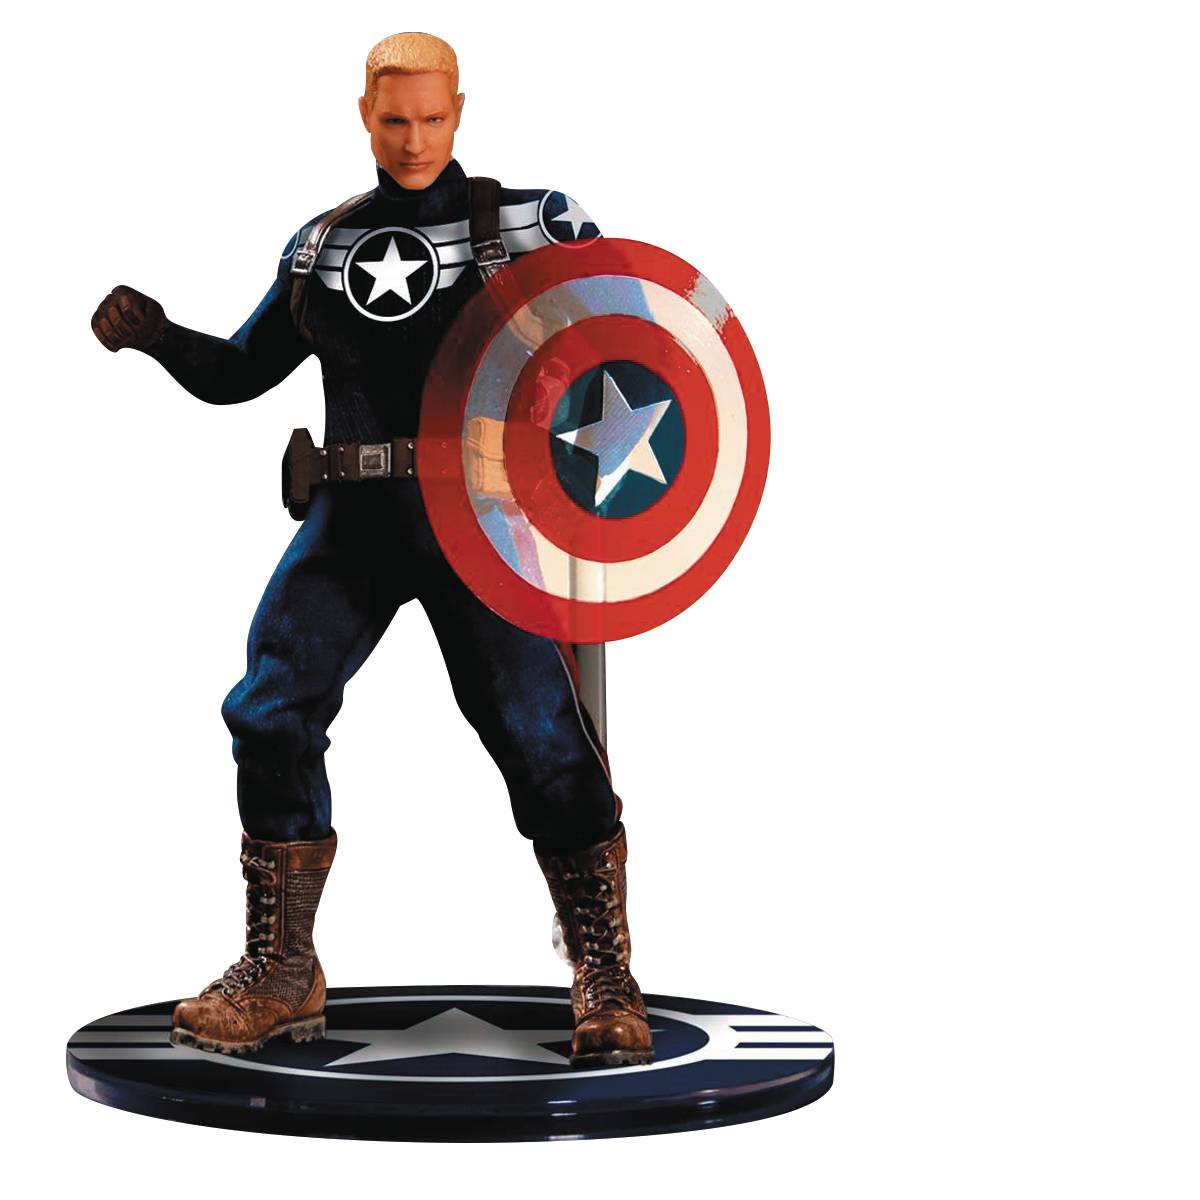 Mezco Captain America one:12 Action Figur